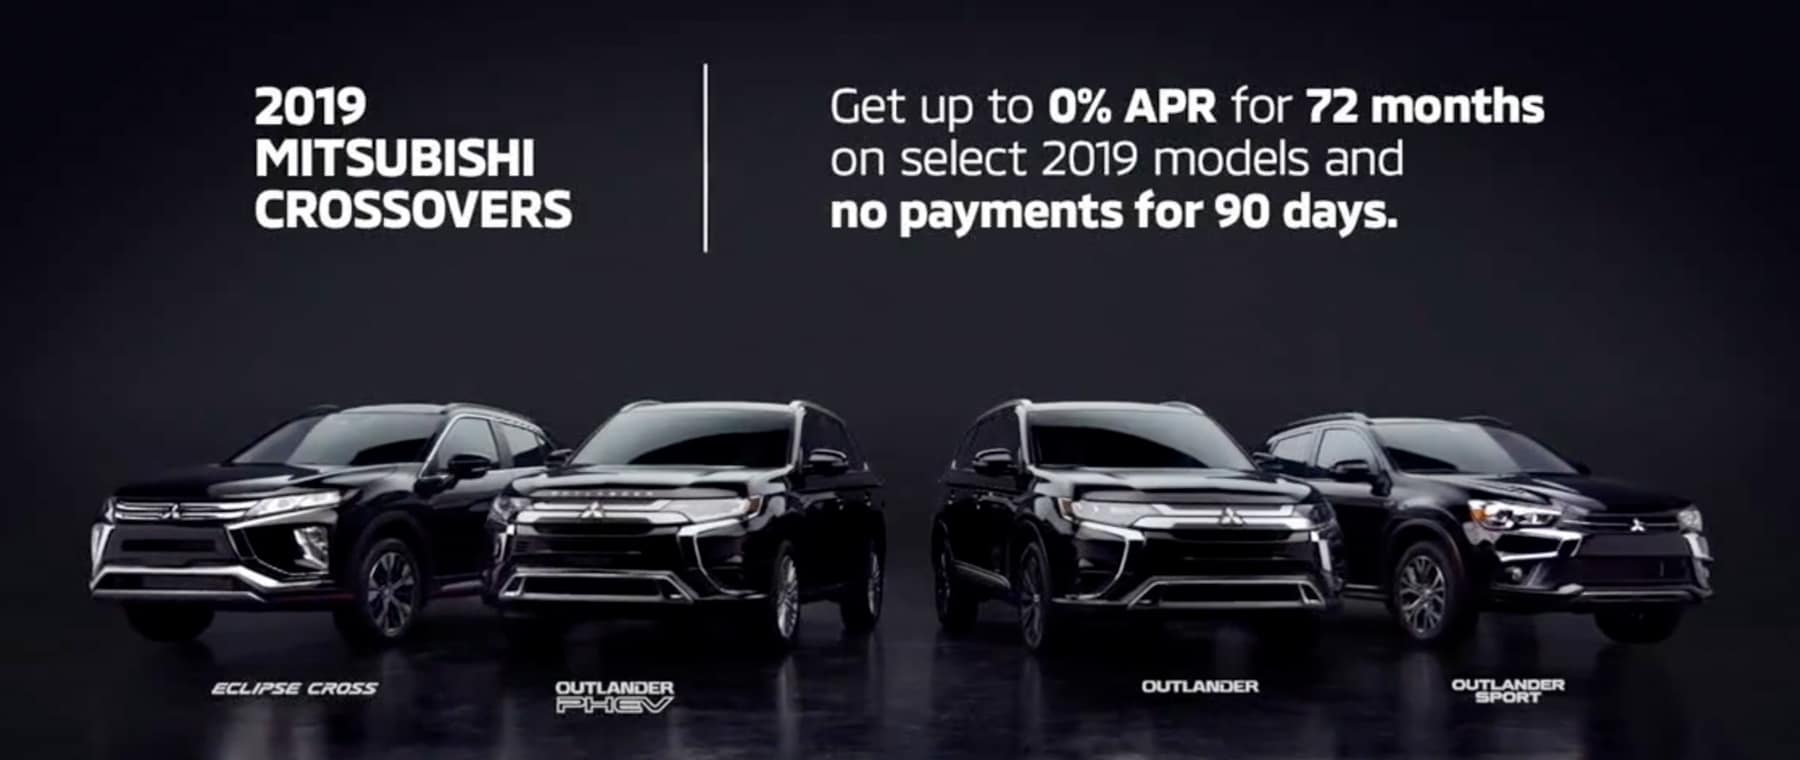 0% APR for 72 Months on Select Models Deal